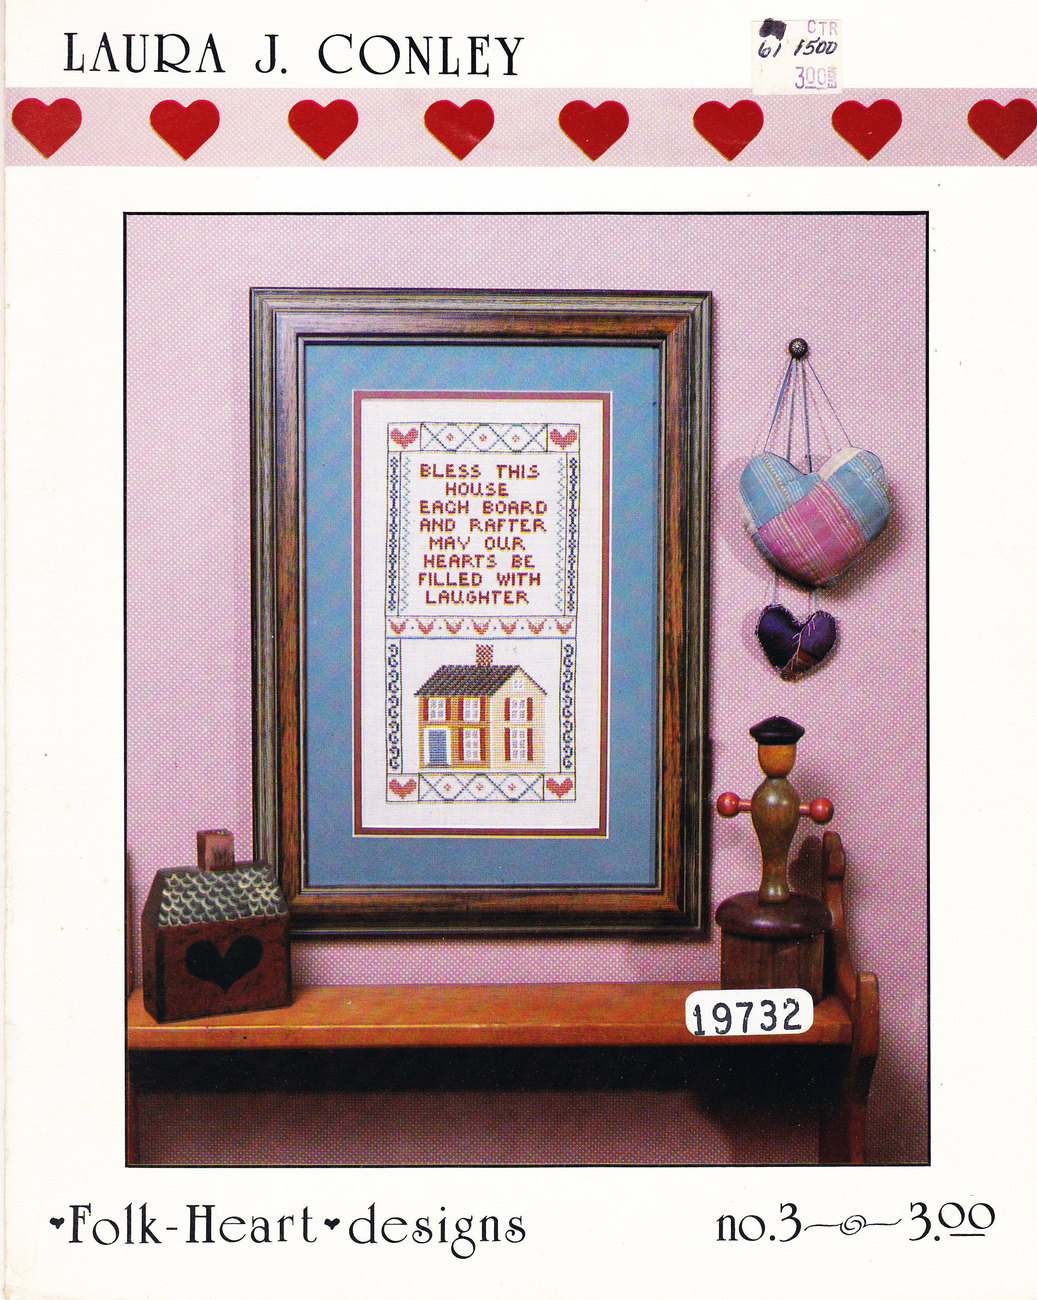 CROSS STITCH BLESS THIS HOUSE EACH BOARD & RAFTER